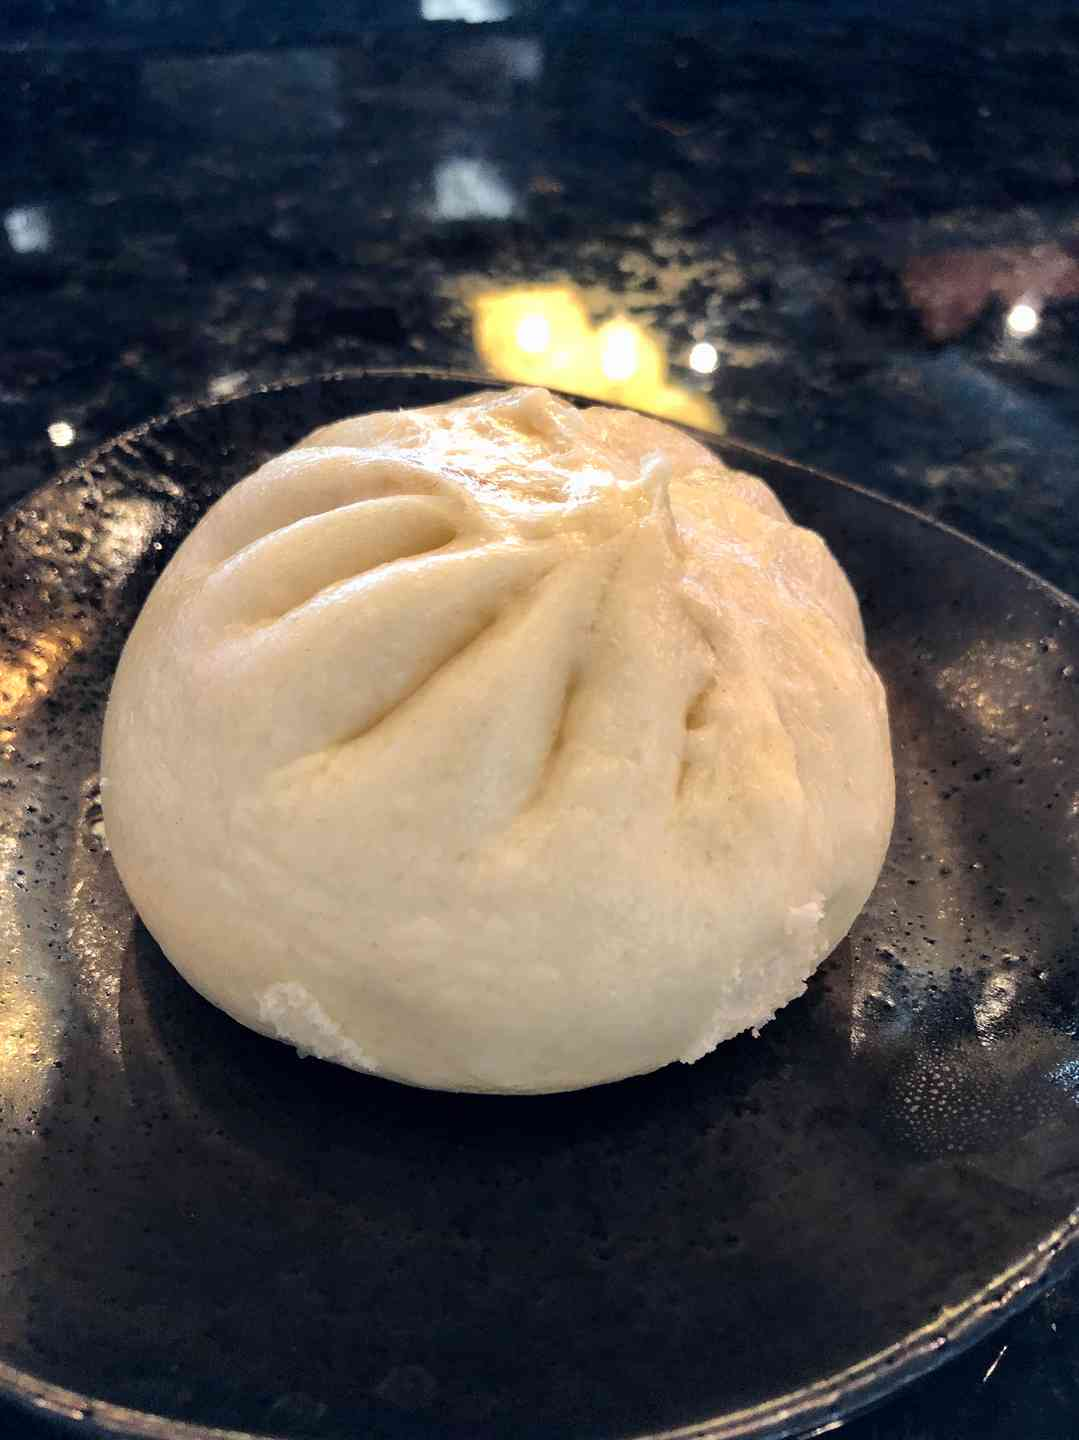 Pork Scallion Bun 葱肉大燒包 (Limited Quantity)